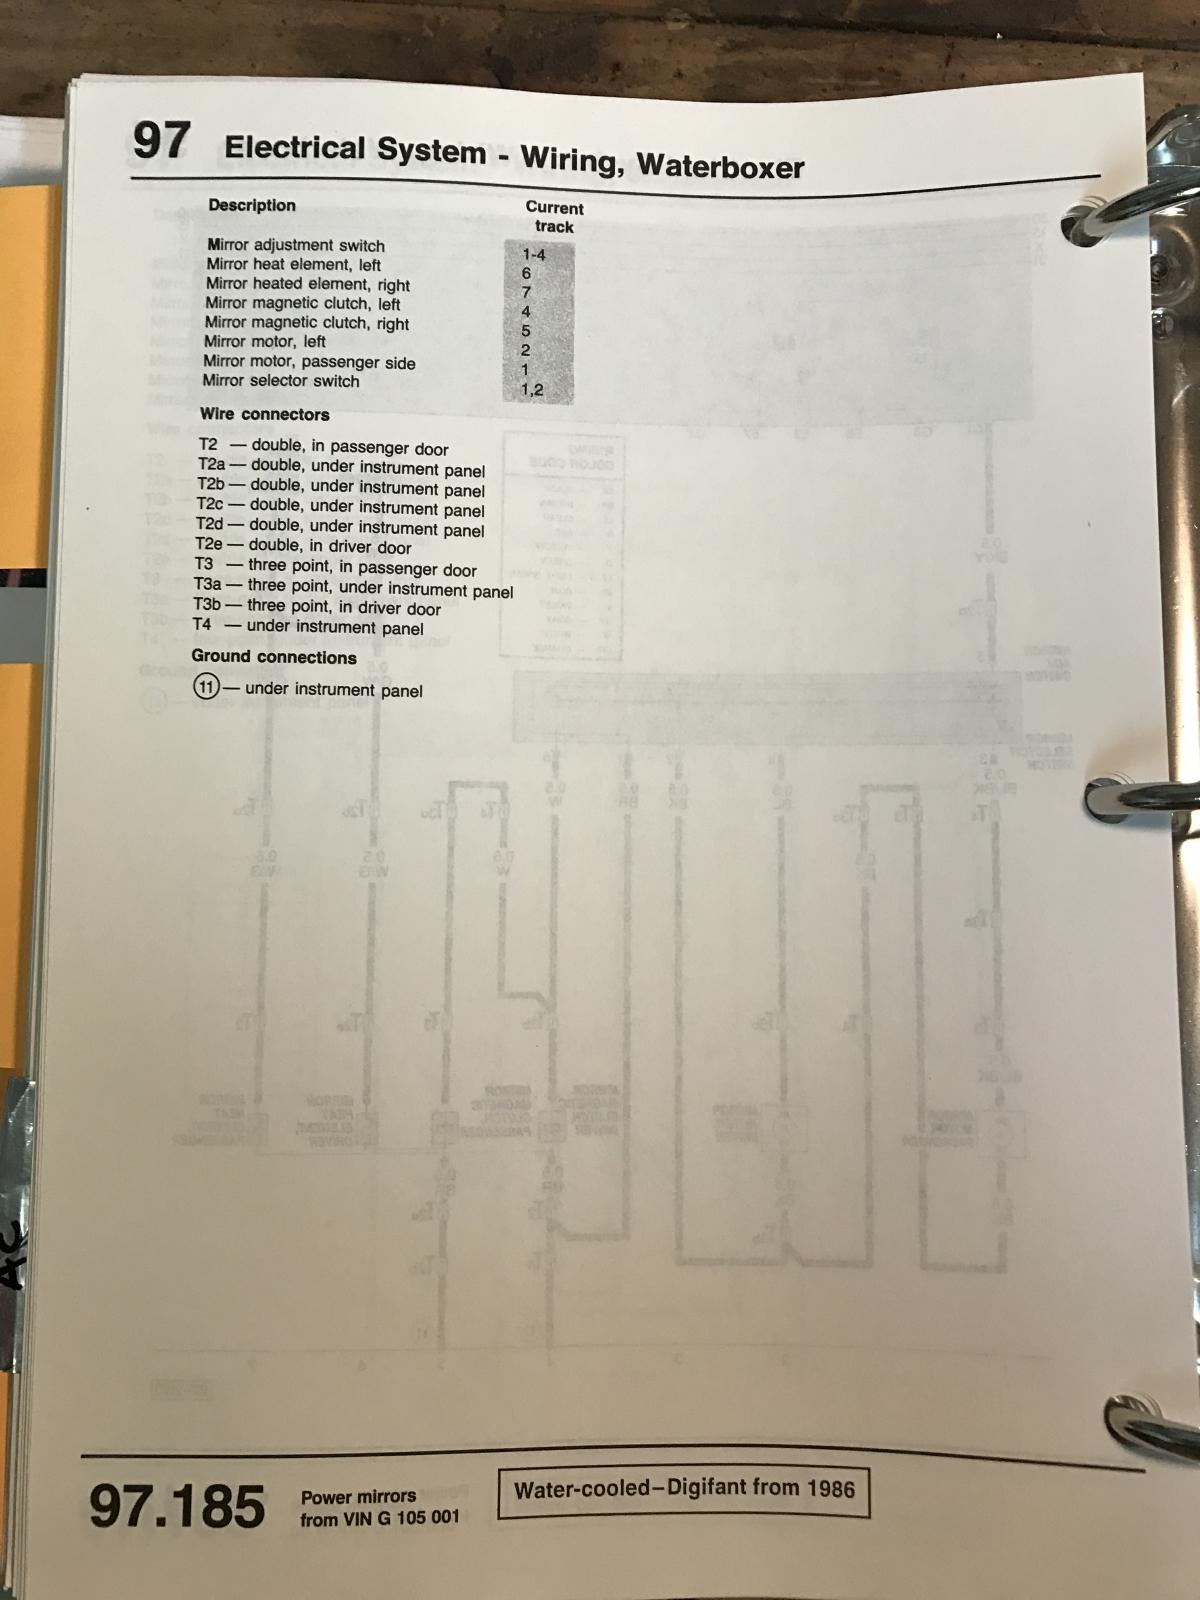 Vanagon View Topic Electric Window Wiring Diagram For International Heated Mirror Image May Have Been Reduced In Size Click To Fullscreen